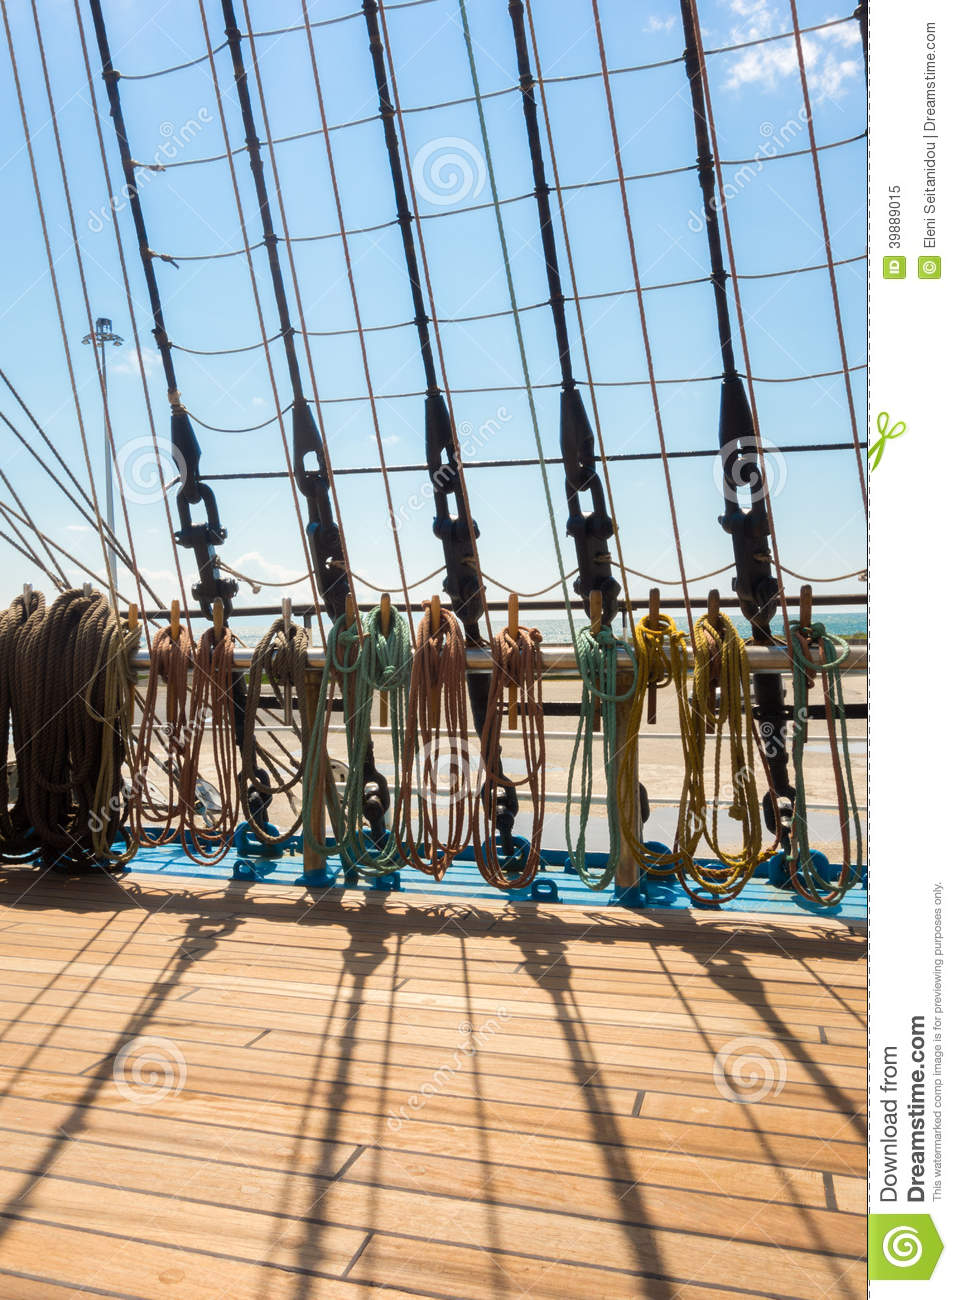 Sailing vessel stock image. Image of rope, shipping, ocean - 39889015